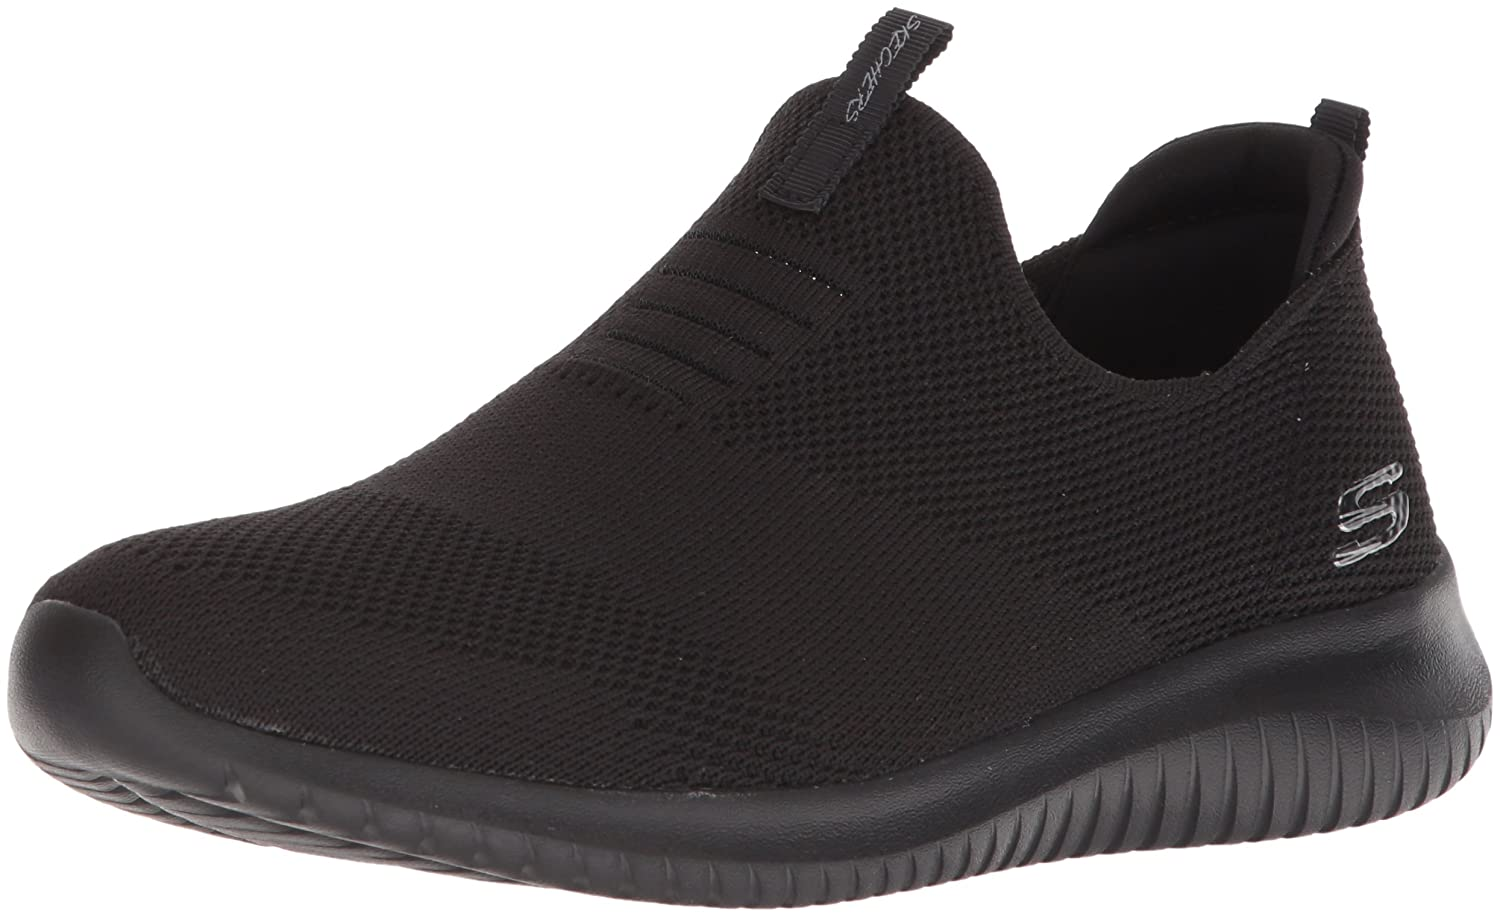 Skechers Ultra Flex-First Take, Zapatillas sin Cordones para Mujer